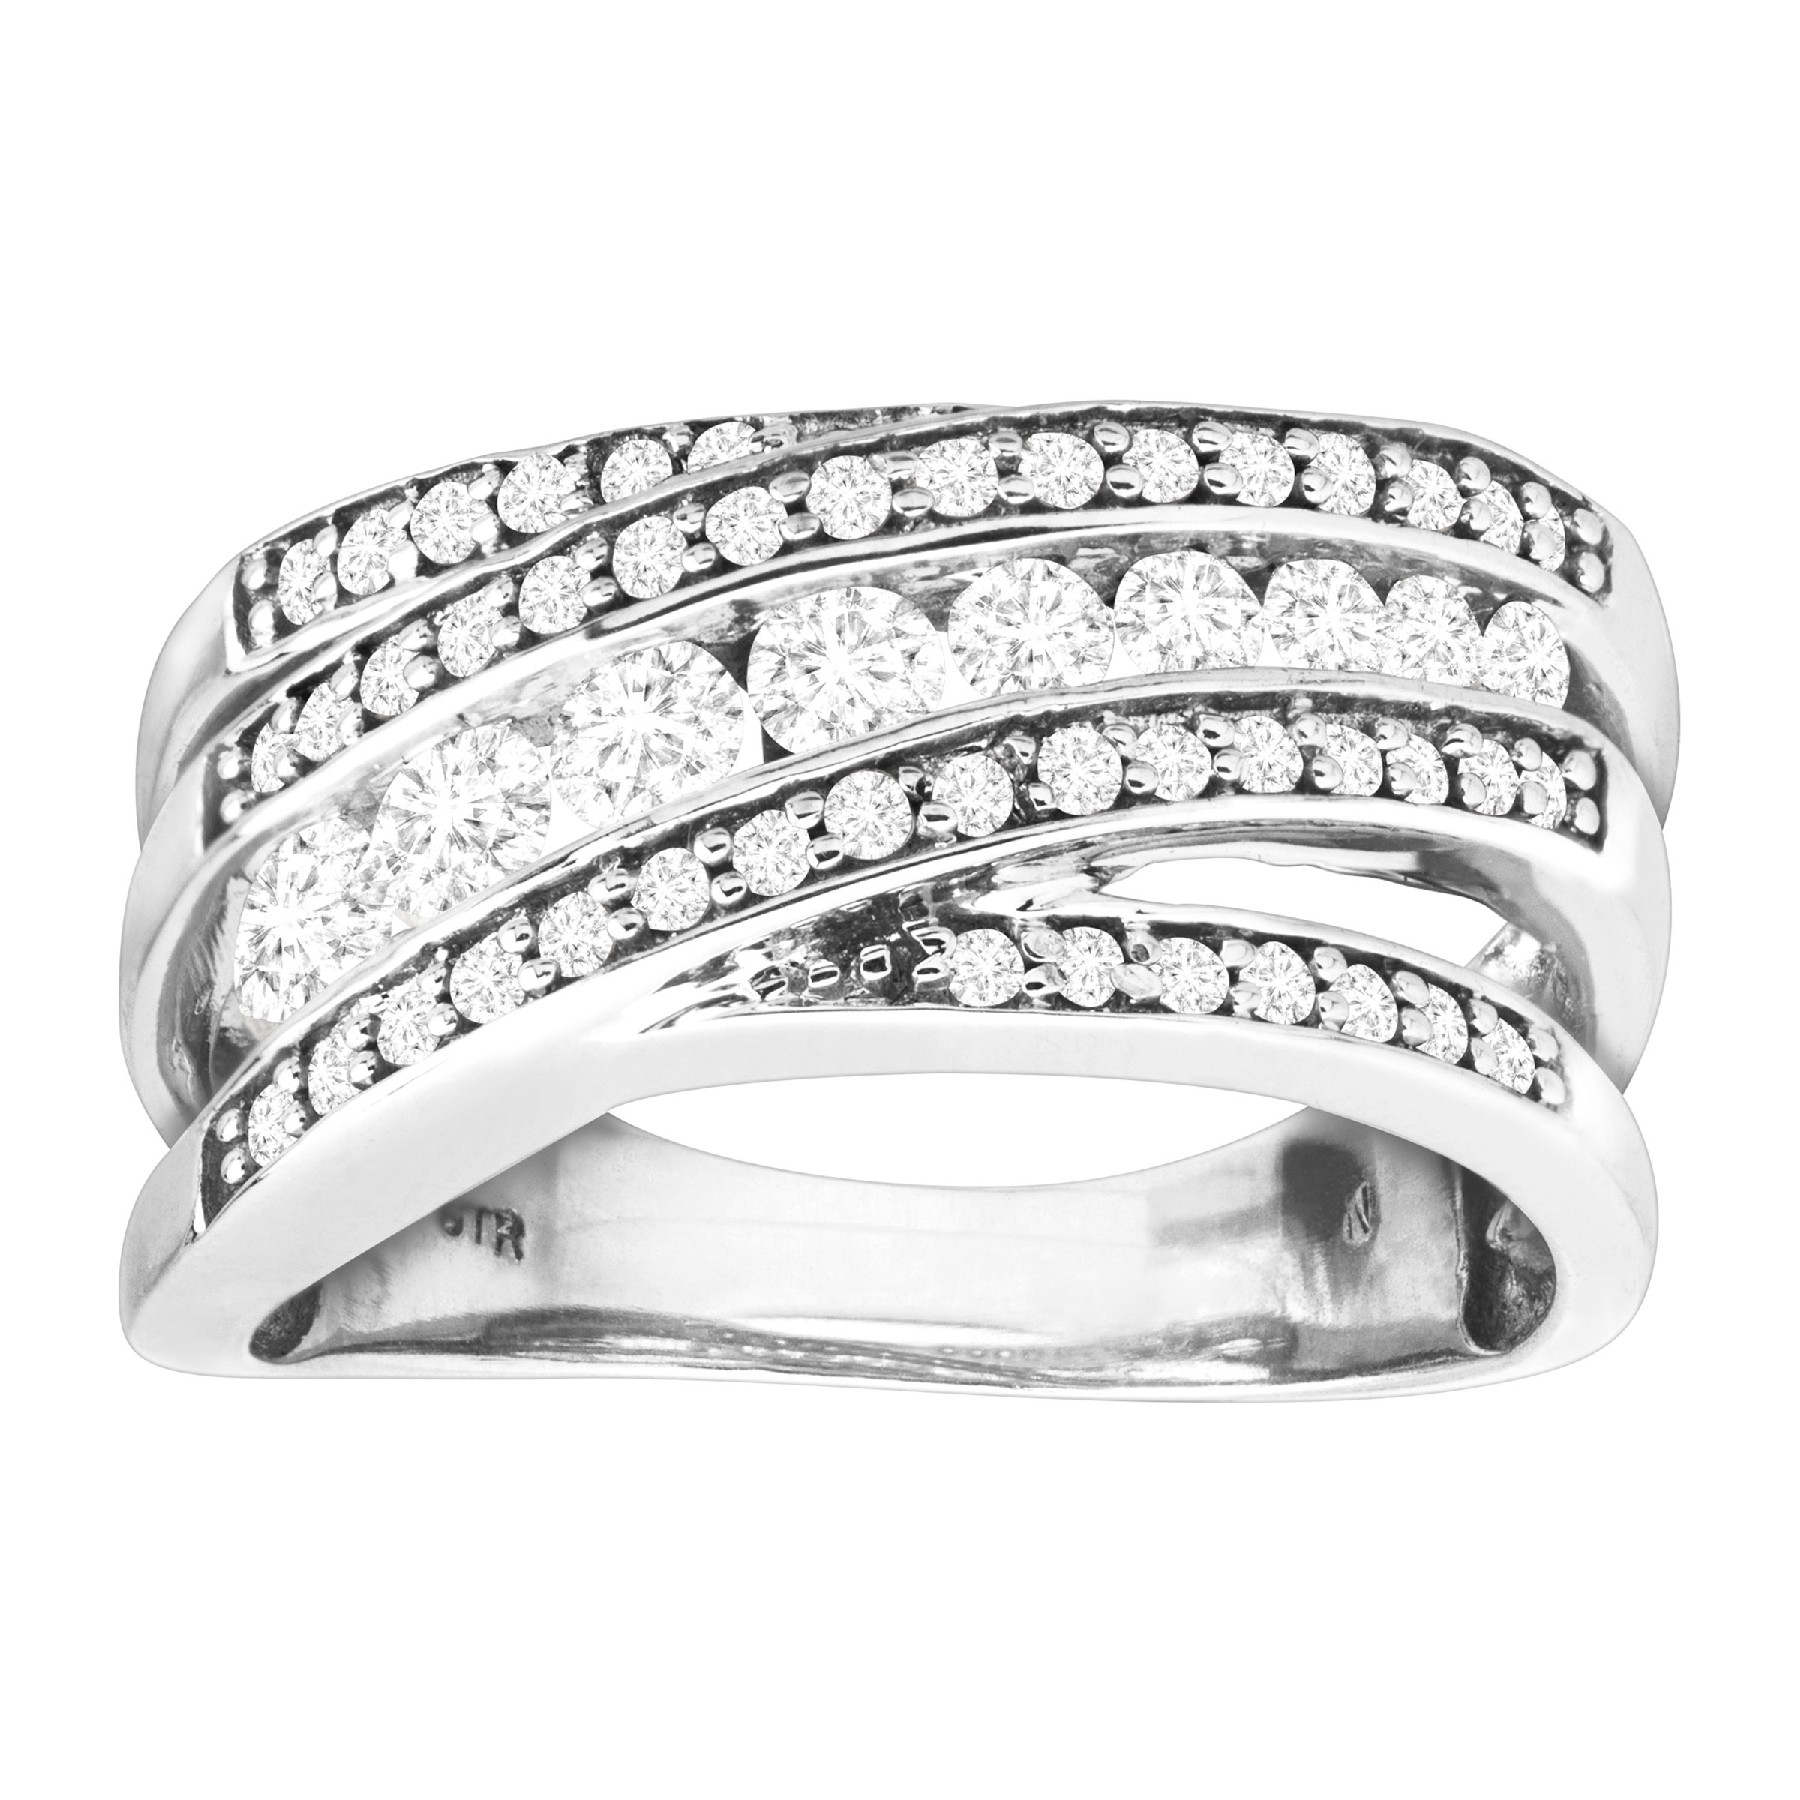 1 Ct Diamond Overlapping Band Anniversary Ring In 10K White Gold Within 2019 Certified Diamond Anniversary Bands In White Gold (View 18 of 25)